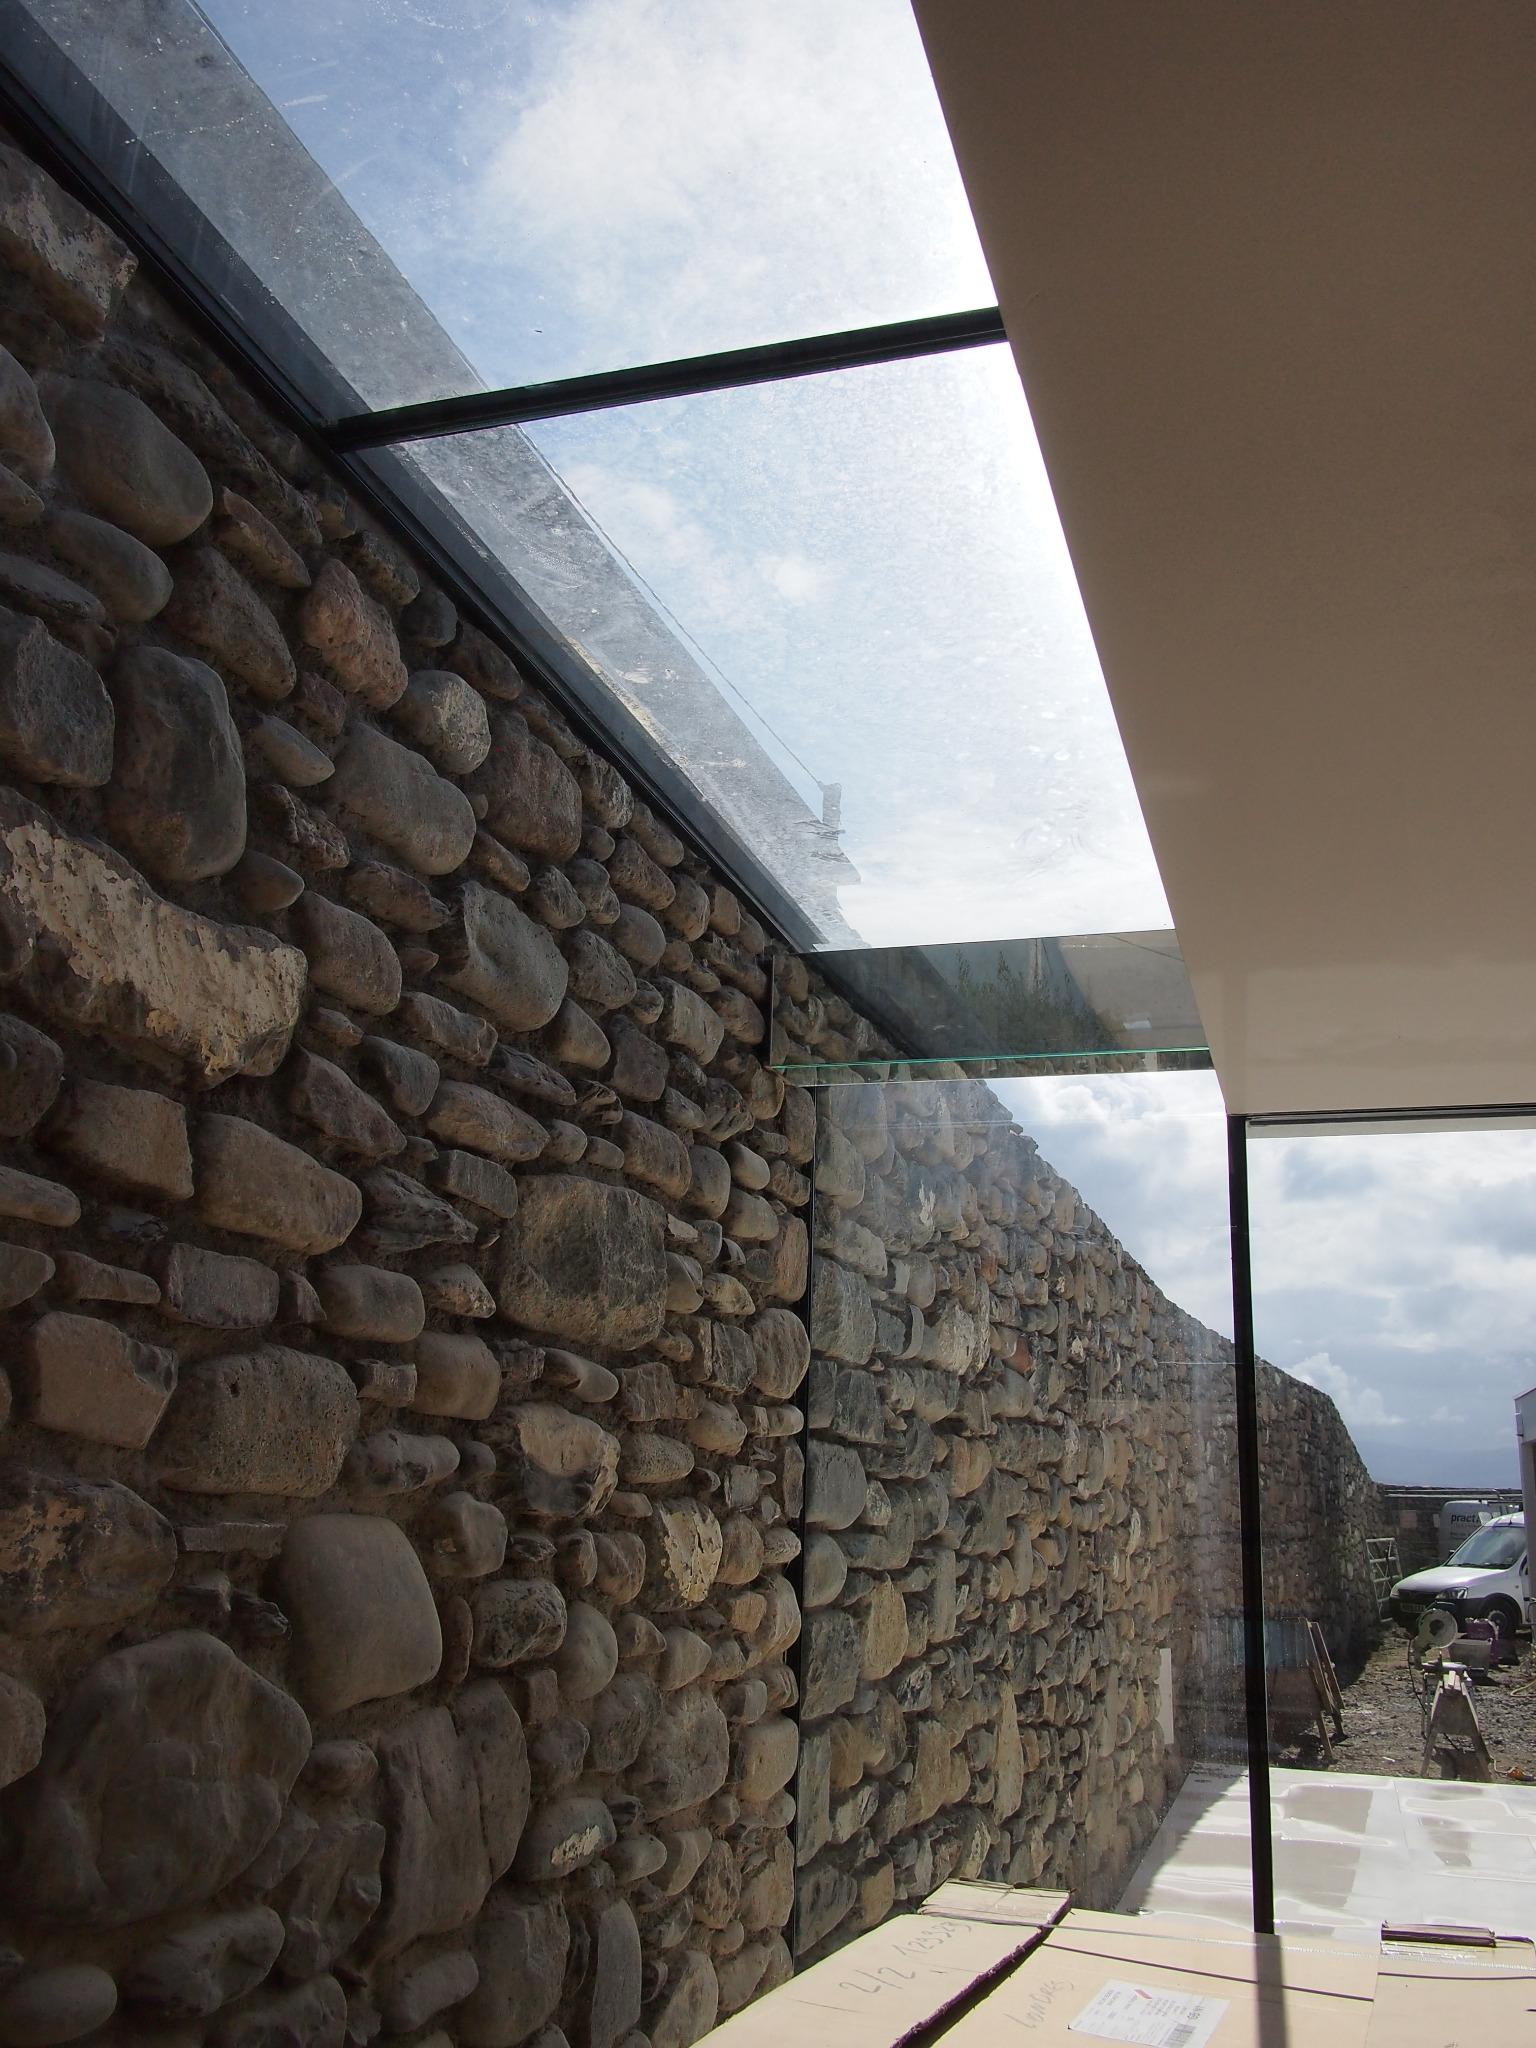 RT @clear_living: #structural glass rooflight with #skyframe doors going into this stone walling. Will be on tonights #granddesigns http://t.co/TyppOdO97c